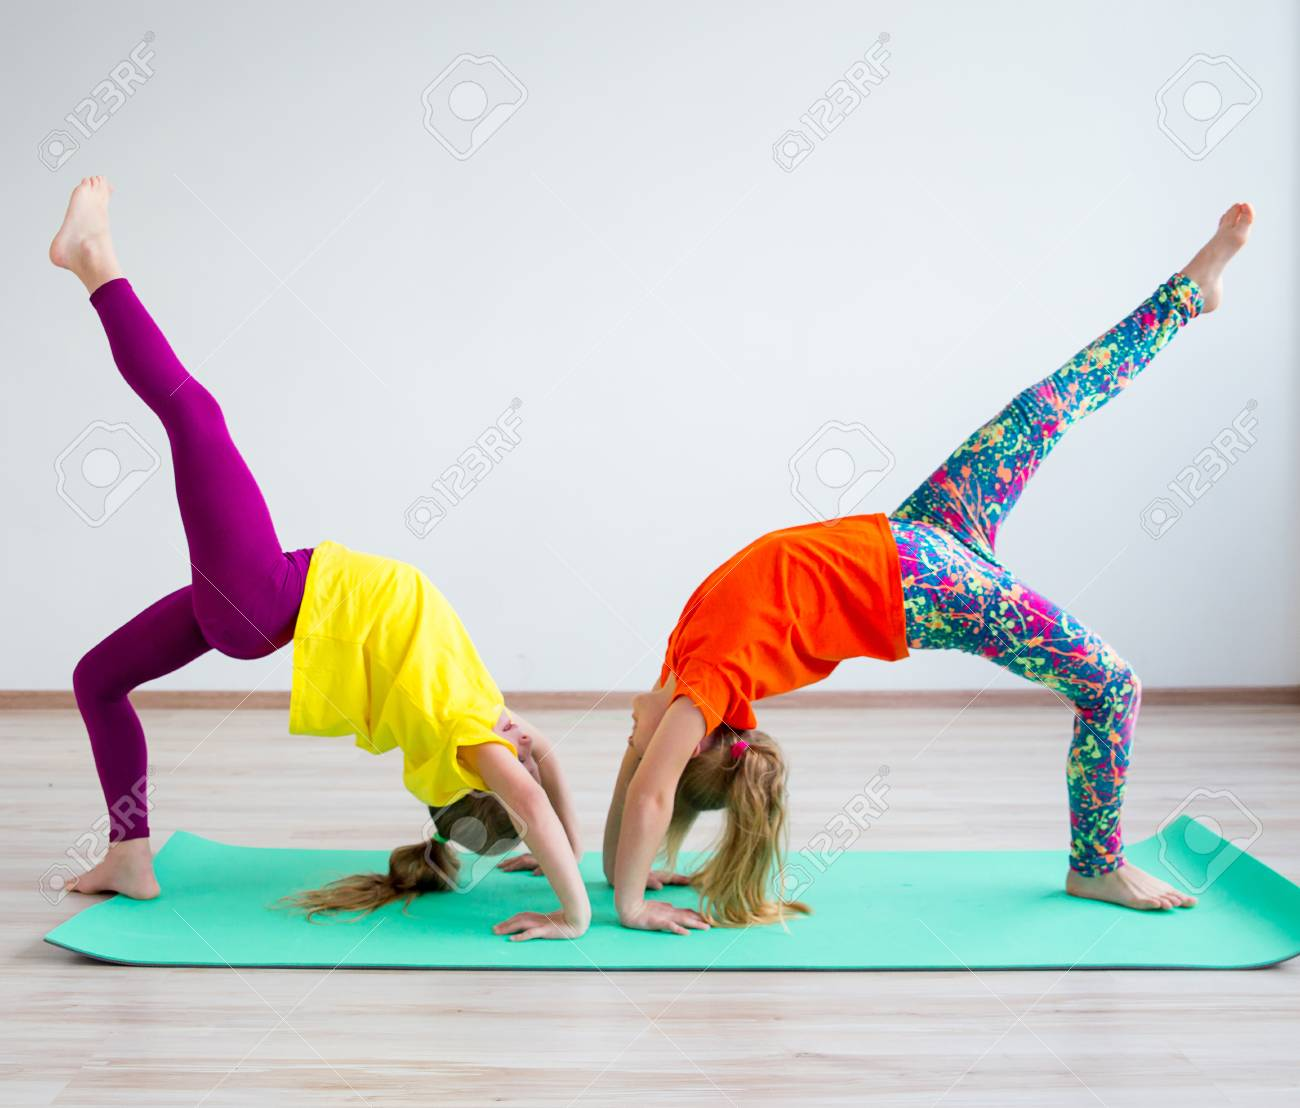 Kids Doing Exercises Stock Photo Picture And Royalty Free Image Image 92538040